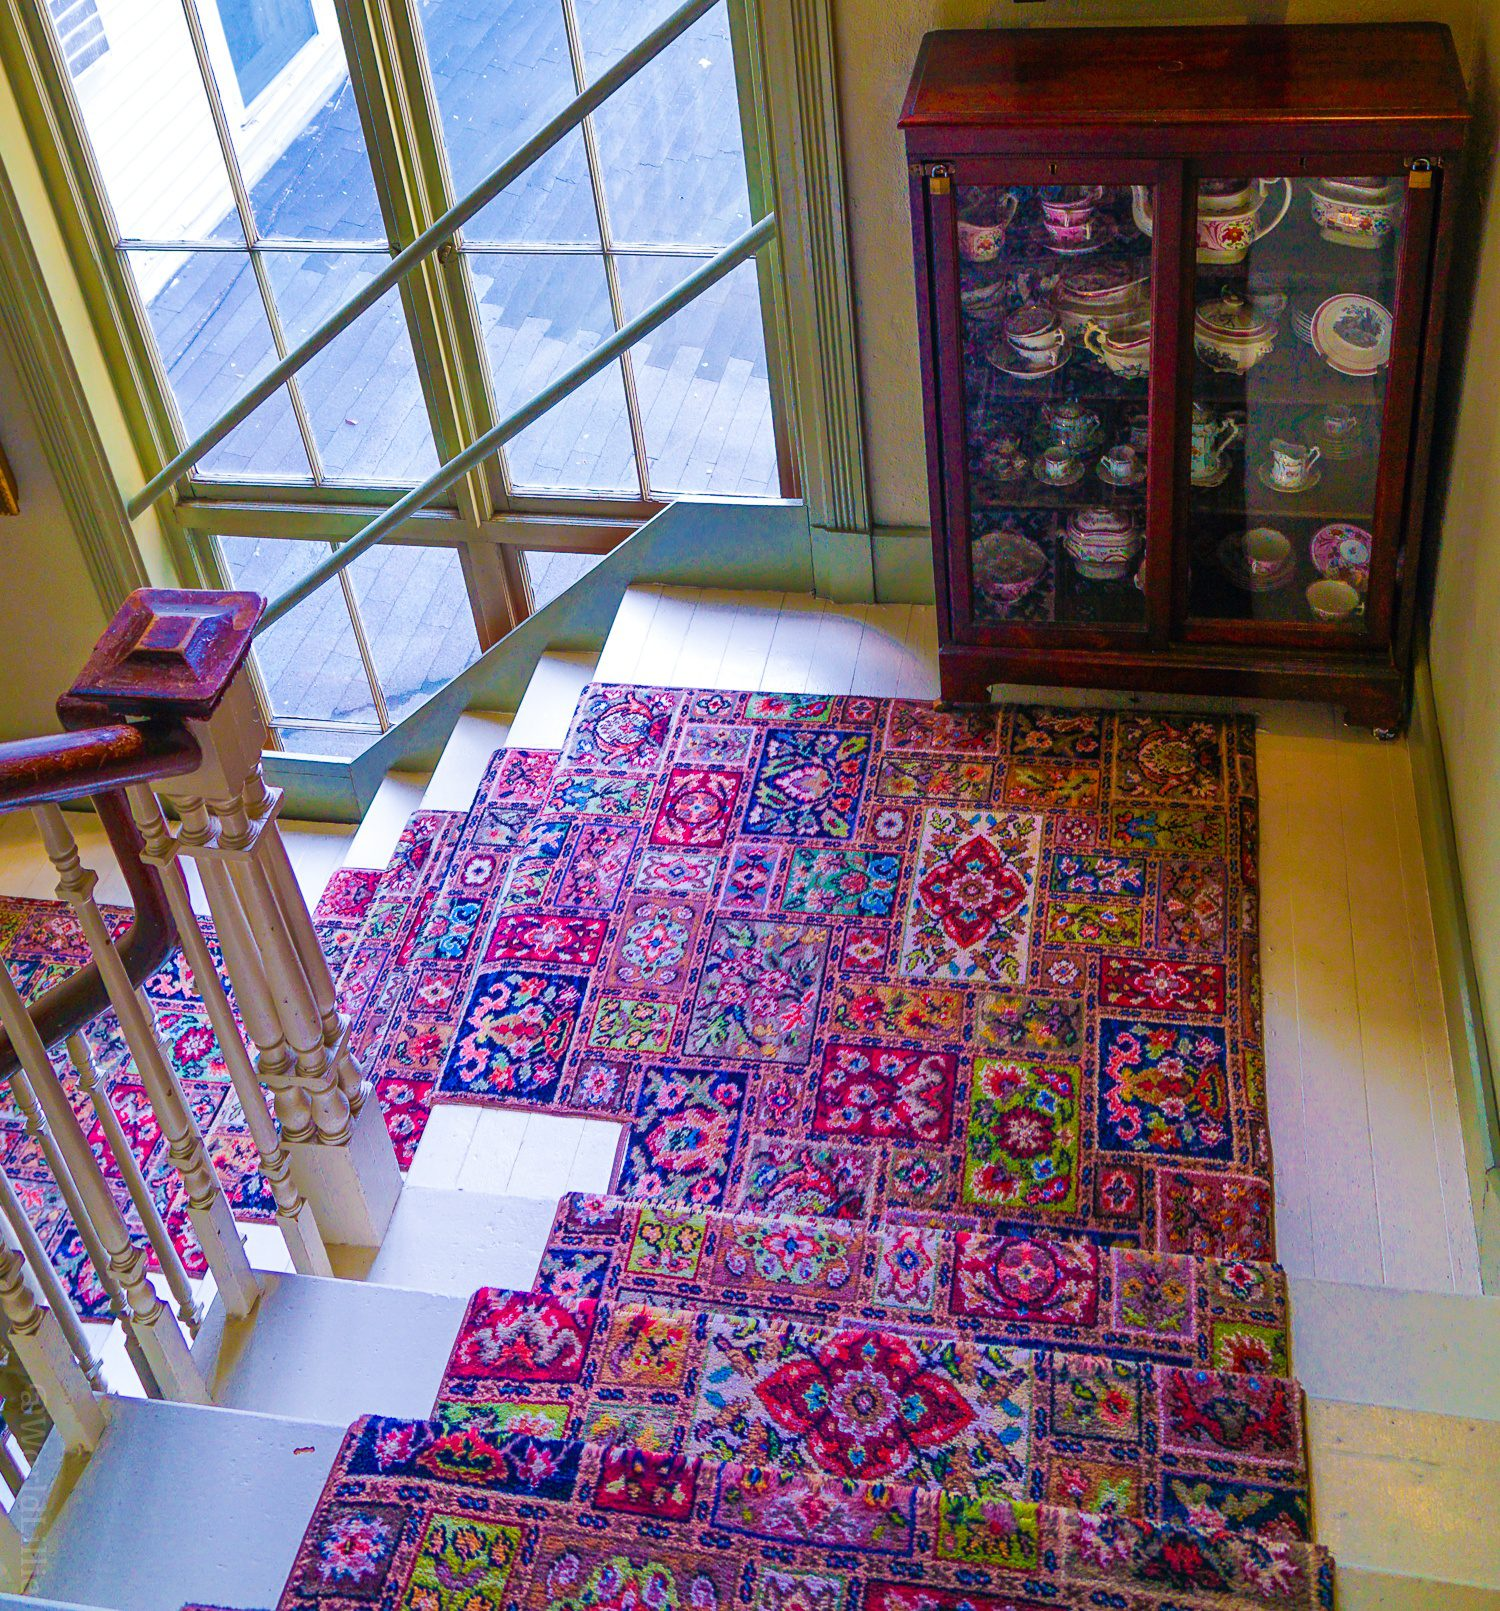 Beautiful pattered antique hotel carpets. Traveling or travelling